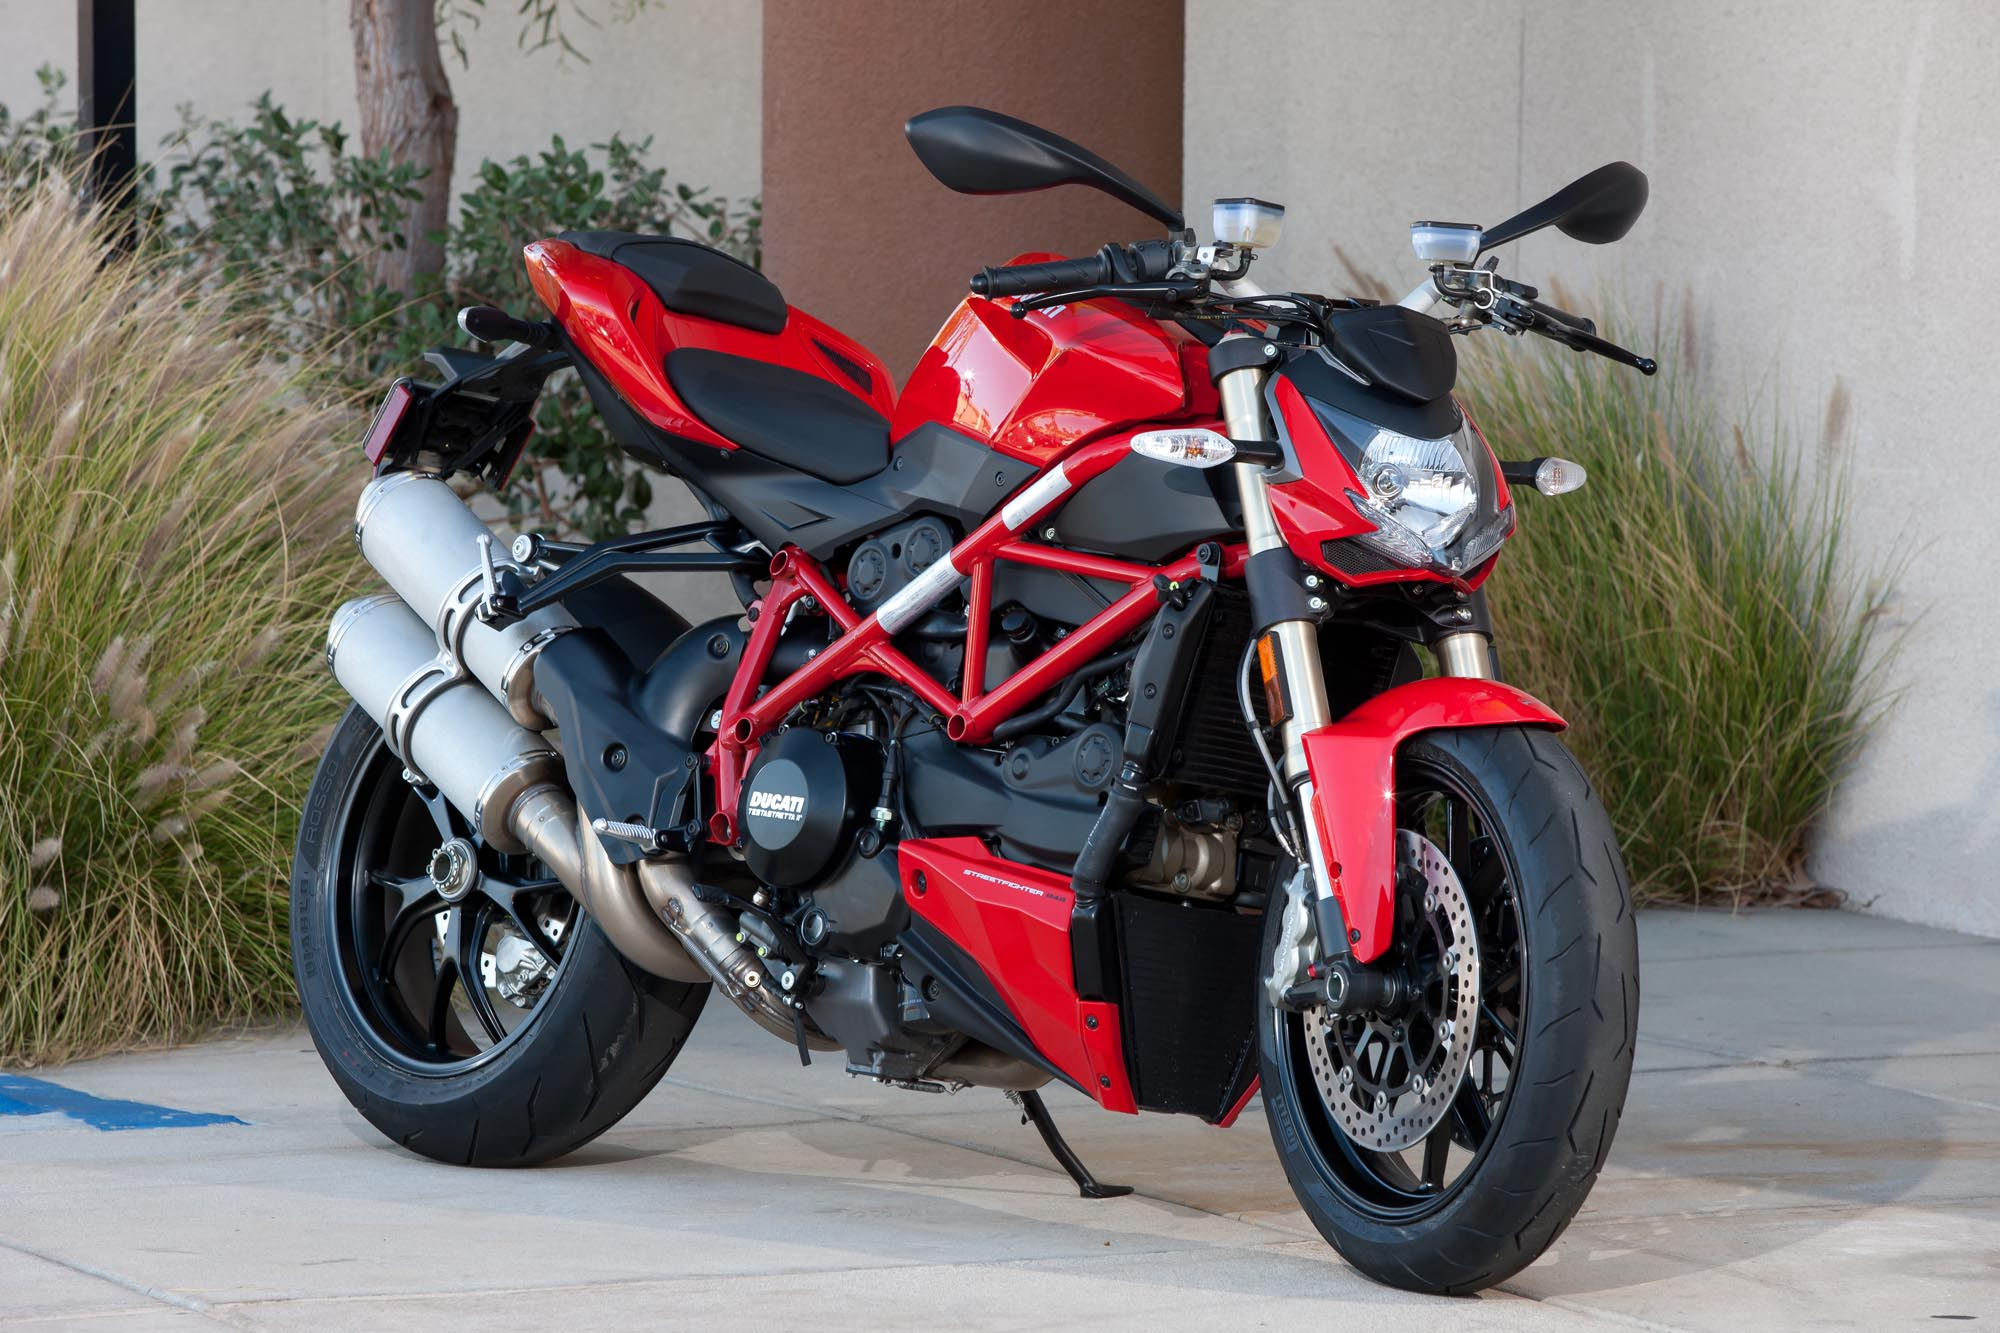 Ducati Panigale 1200cc >> Ride Review: Ducati Streetfighter 848 - Asphalt & Rubber